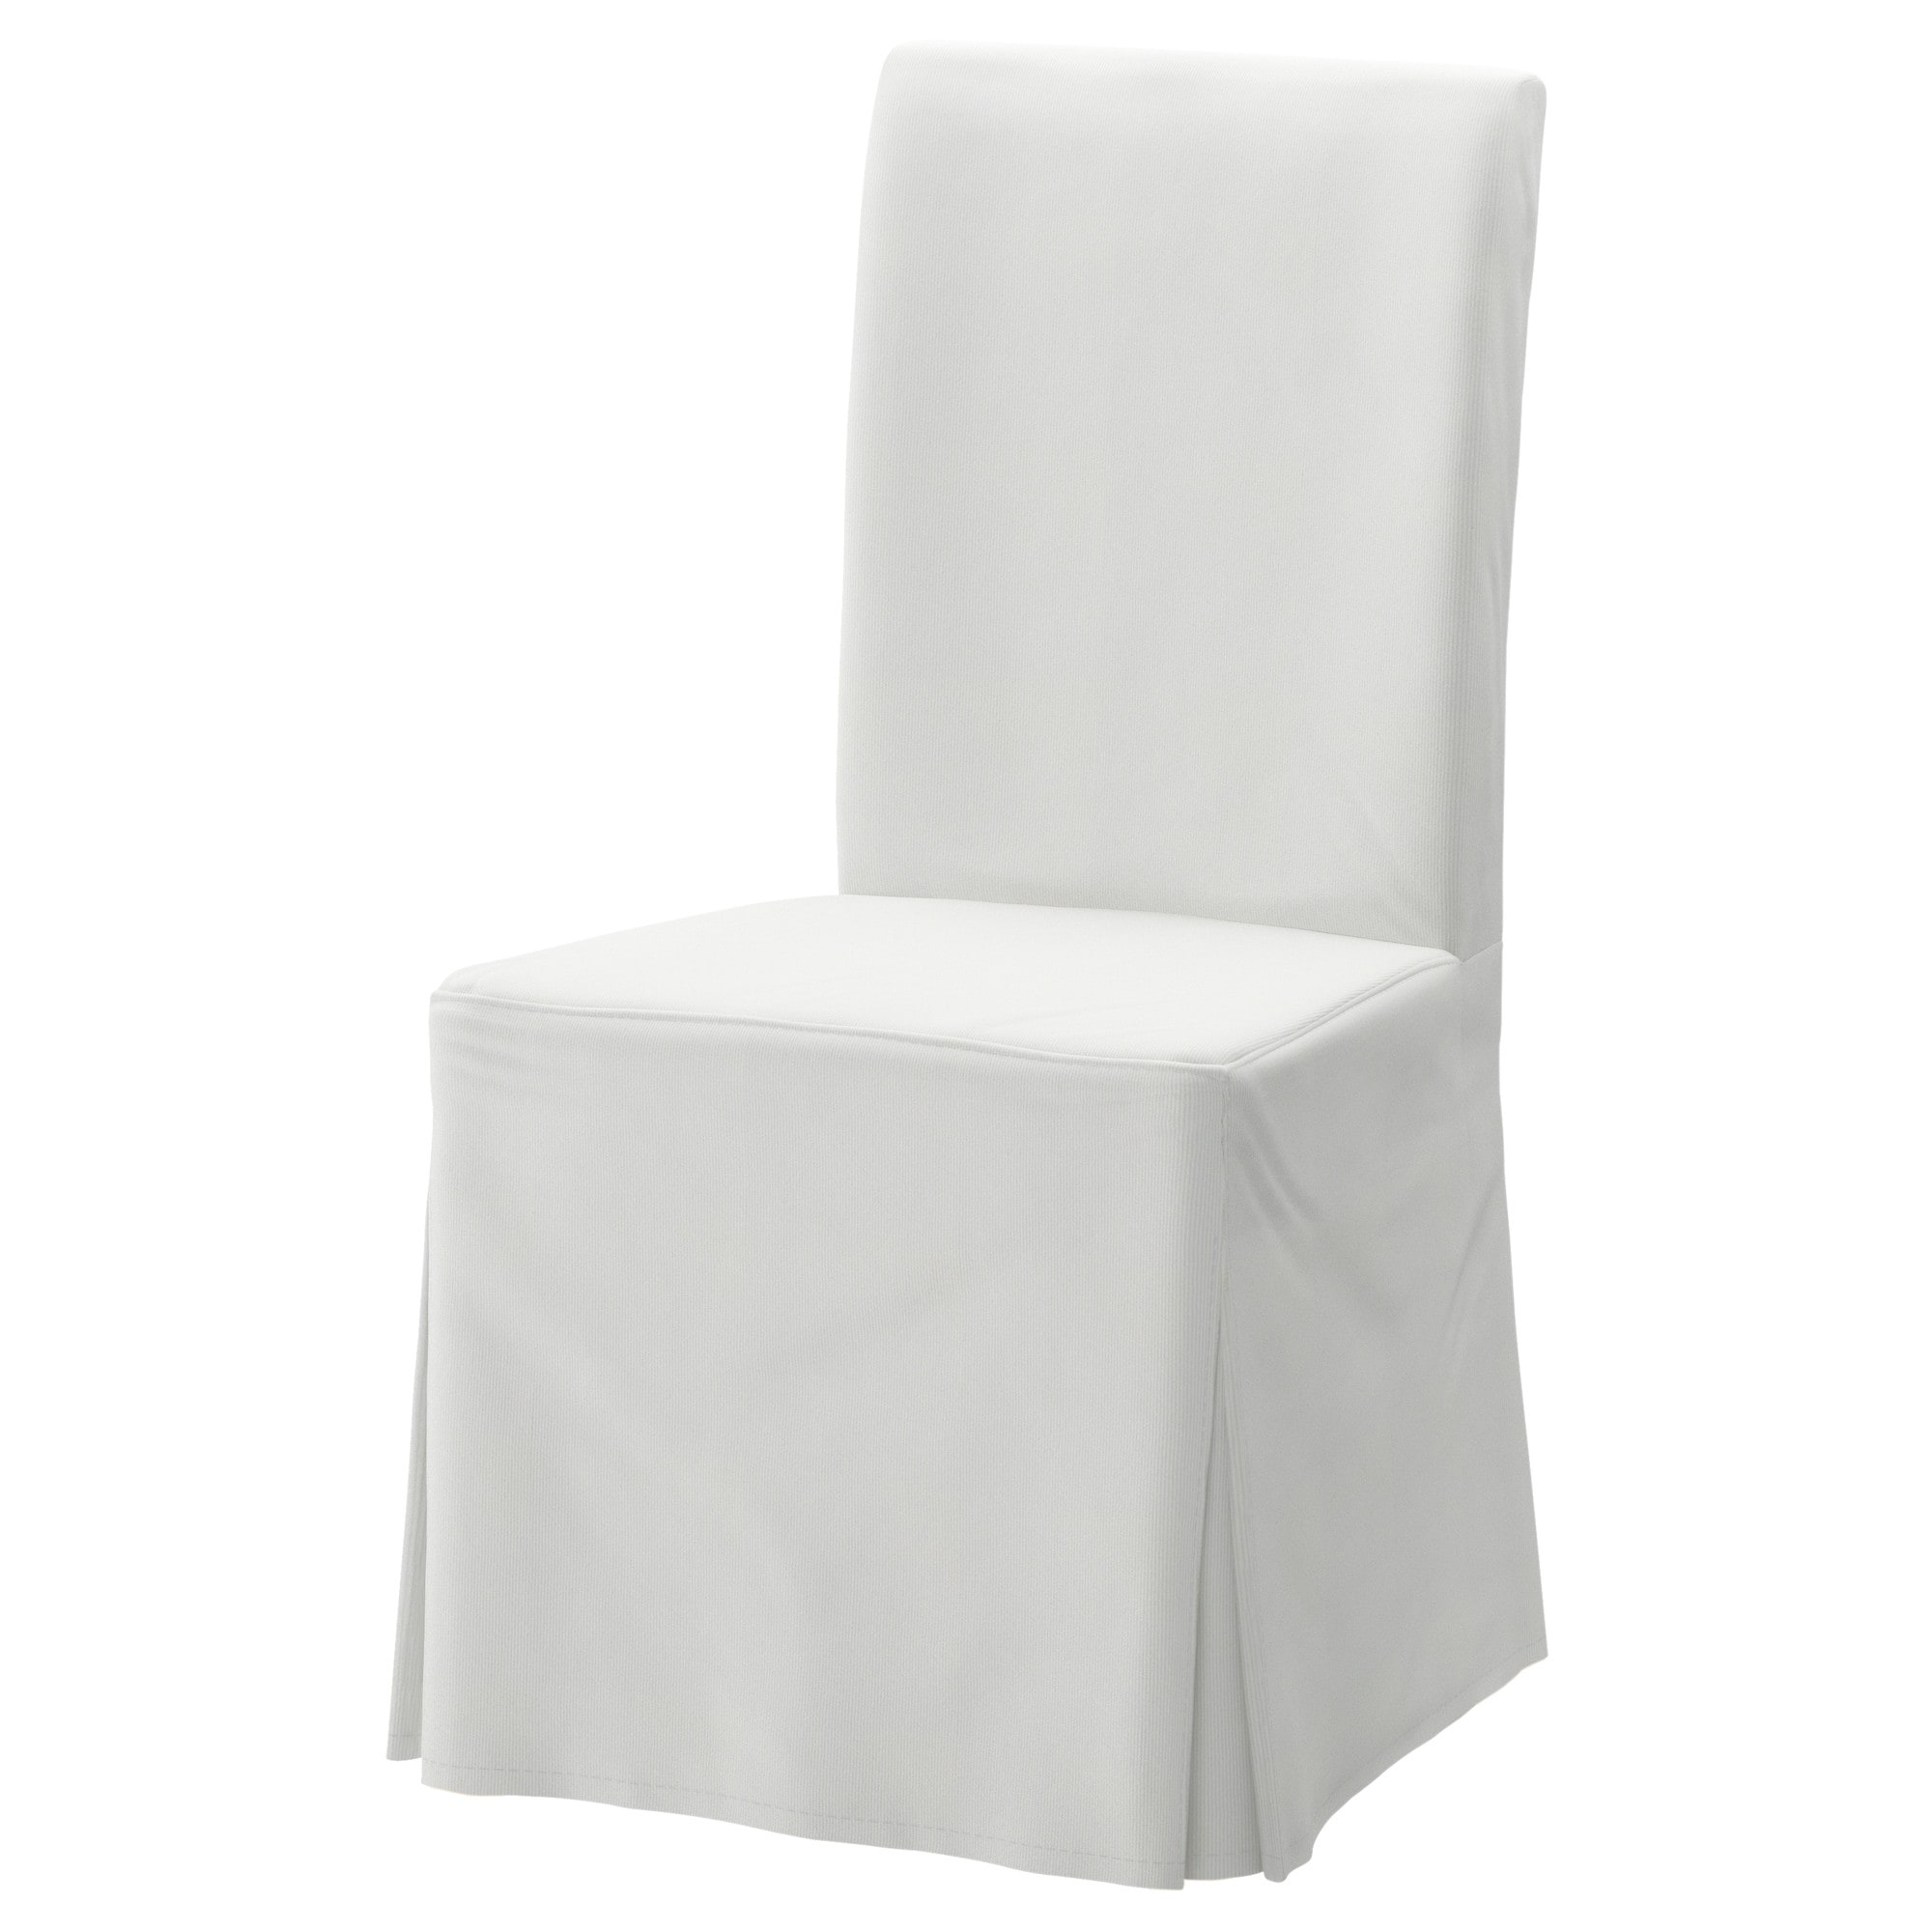 Chair Cover Henriksdal Chair Cover Long Blekinge White